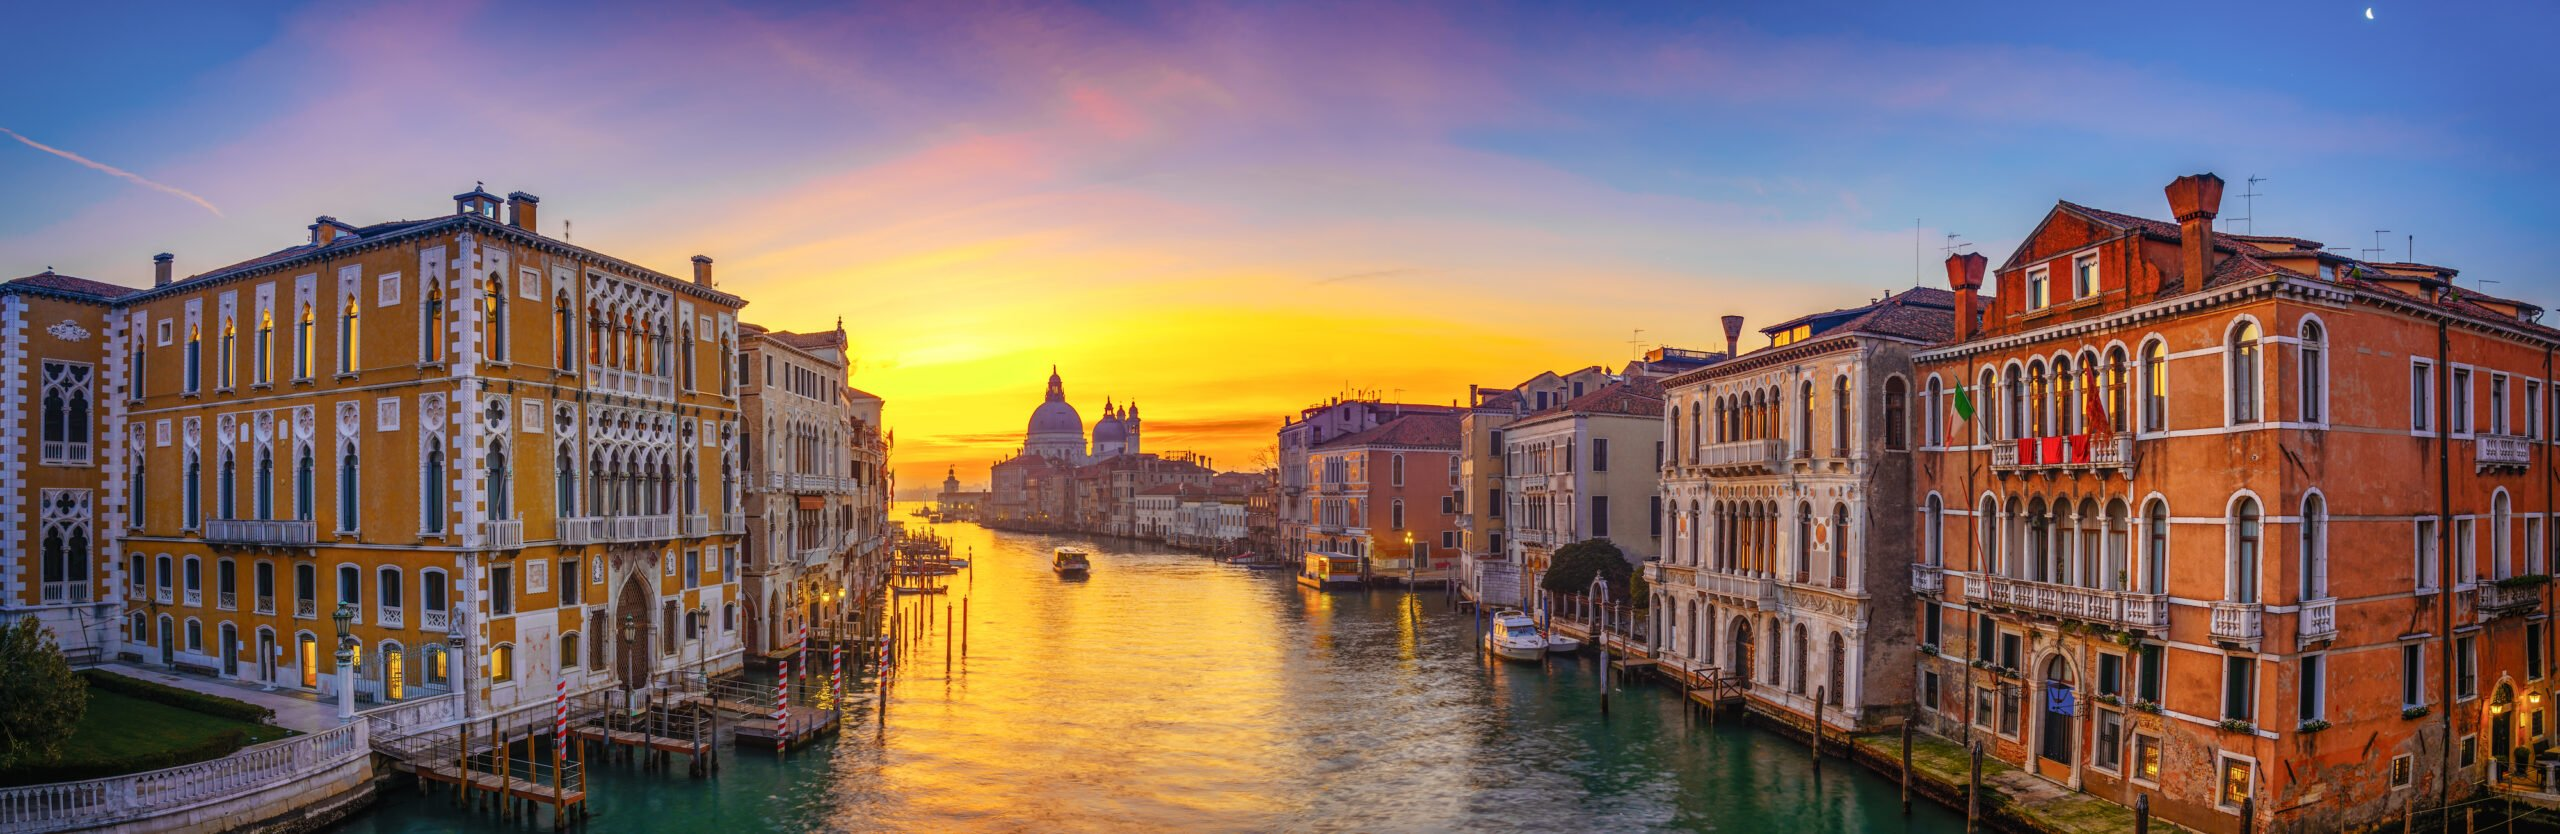 Best Of Venice, Verona & Milan 9 Day Tour Package_9